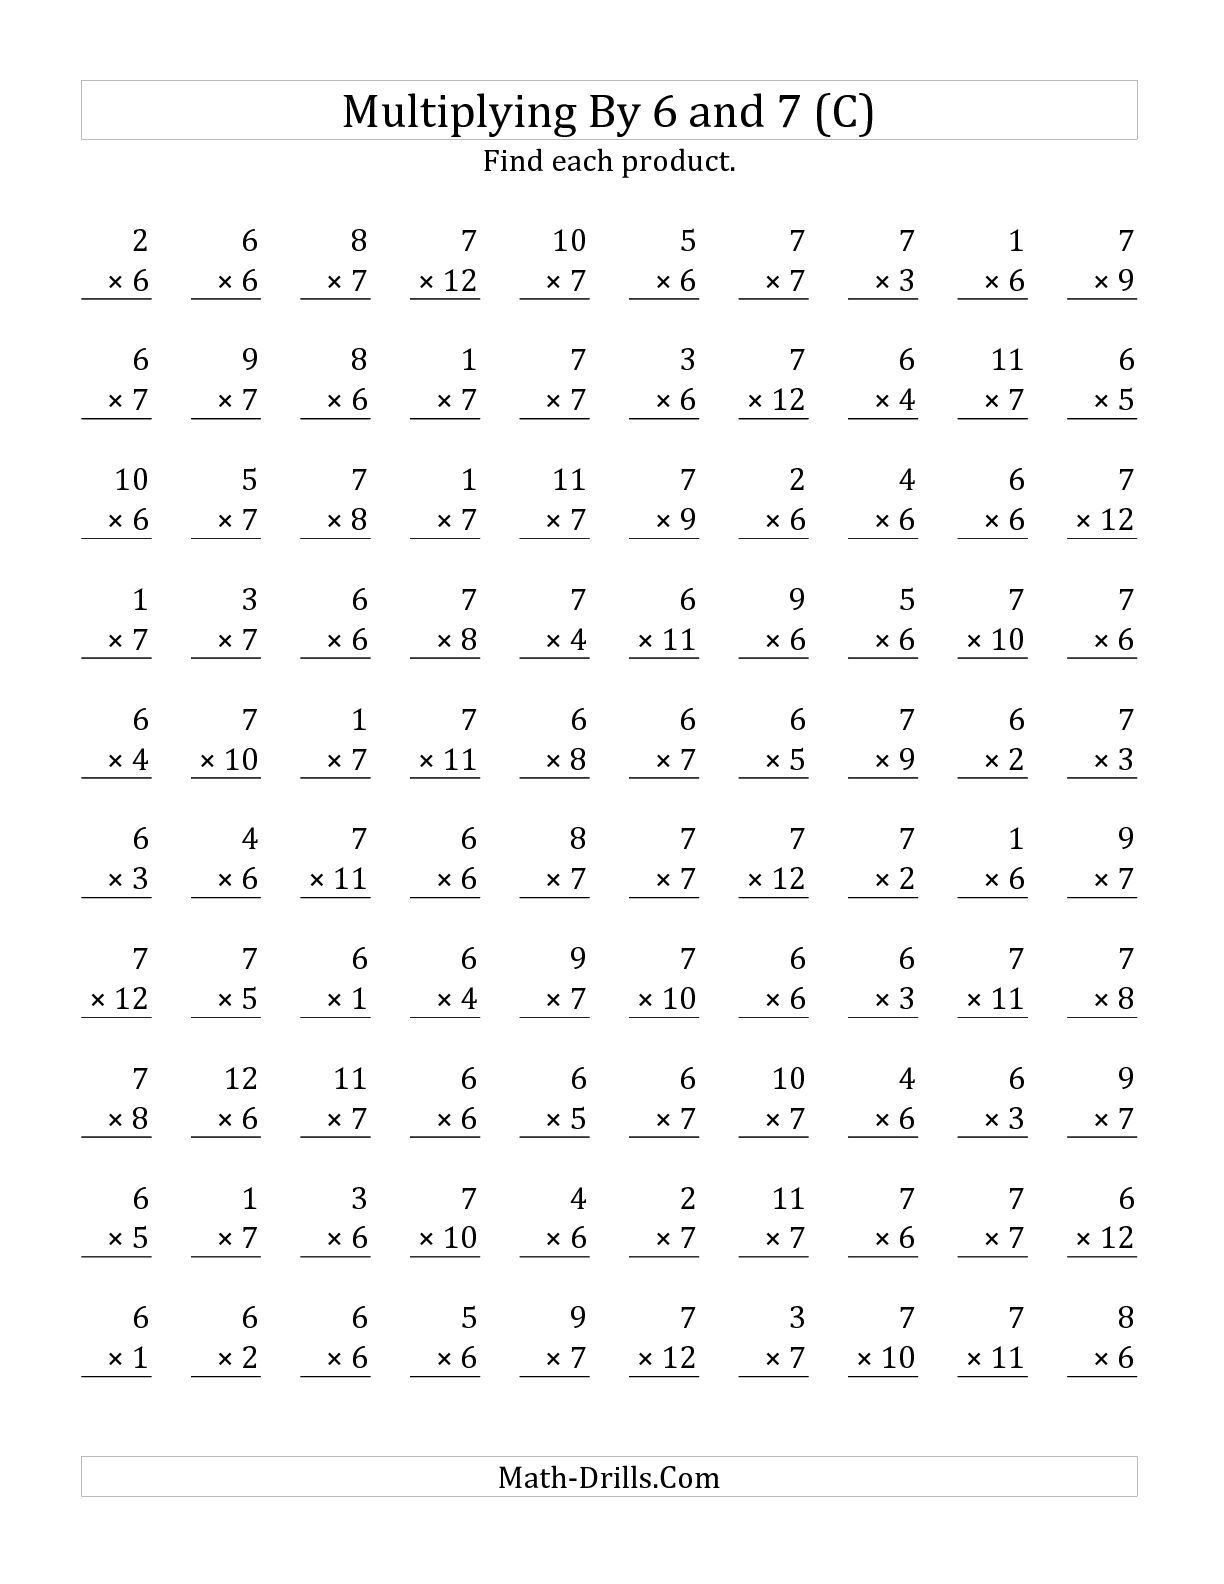 Worksheets Math Multiplication Worksheets the multiplying 1 to 12 by 6 and 7 c math worksheet from multiplication worksheets page at drills com